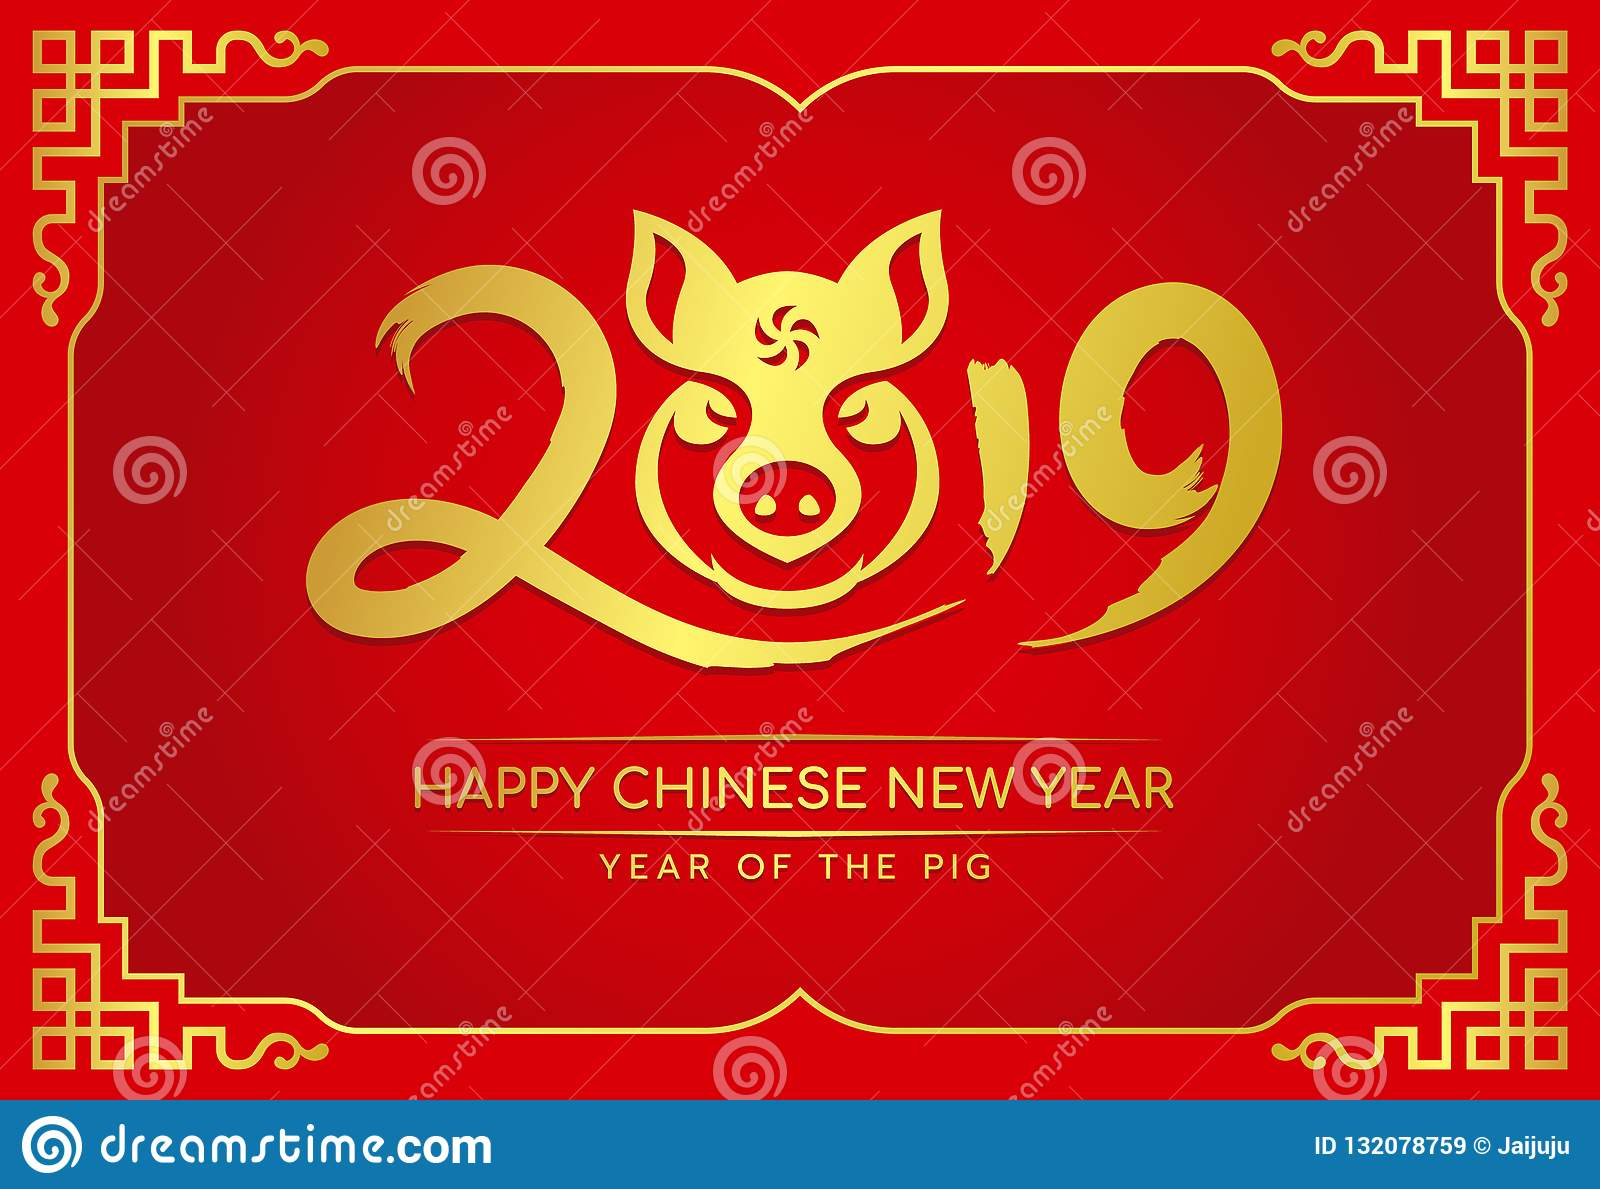 Happy chinese new year card with gold 2019 ink text and pig head zodiac sign in china frame on red background vector design